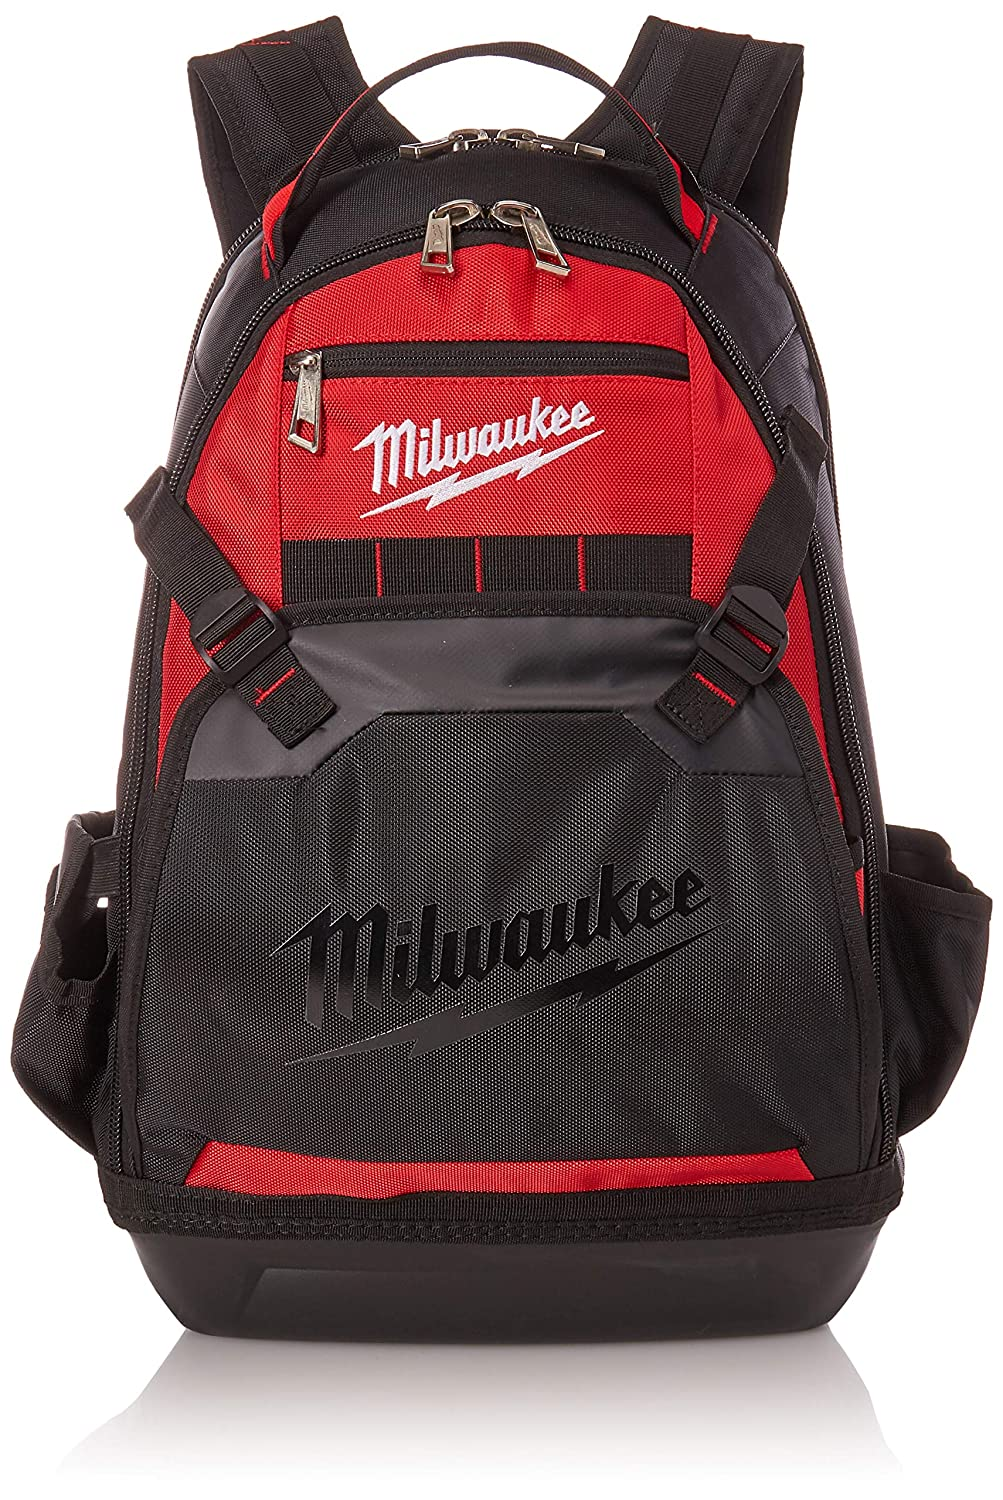 Milwaukee 48-22-8200 1680 Denier 35 Pocket Jobsite Backpack w/ Laptop Sleeve and Molded Plastic Base